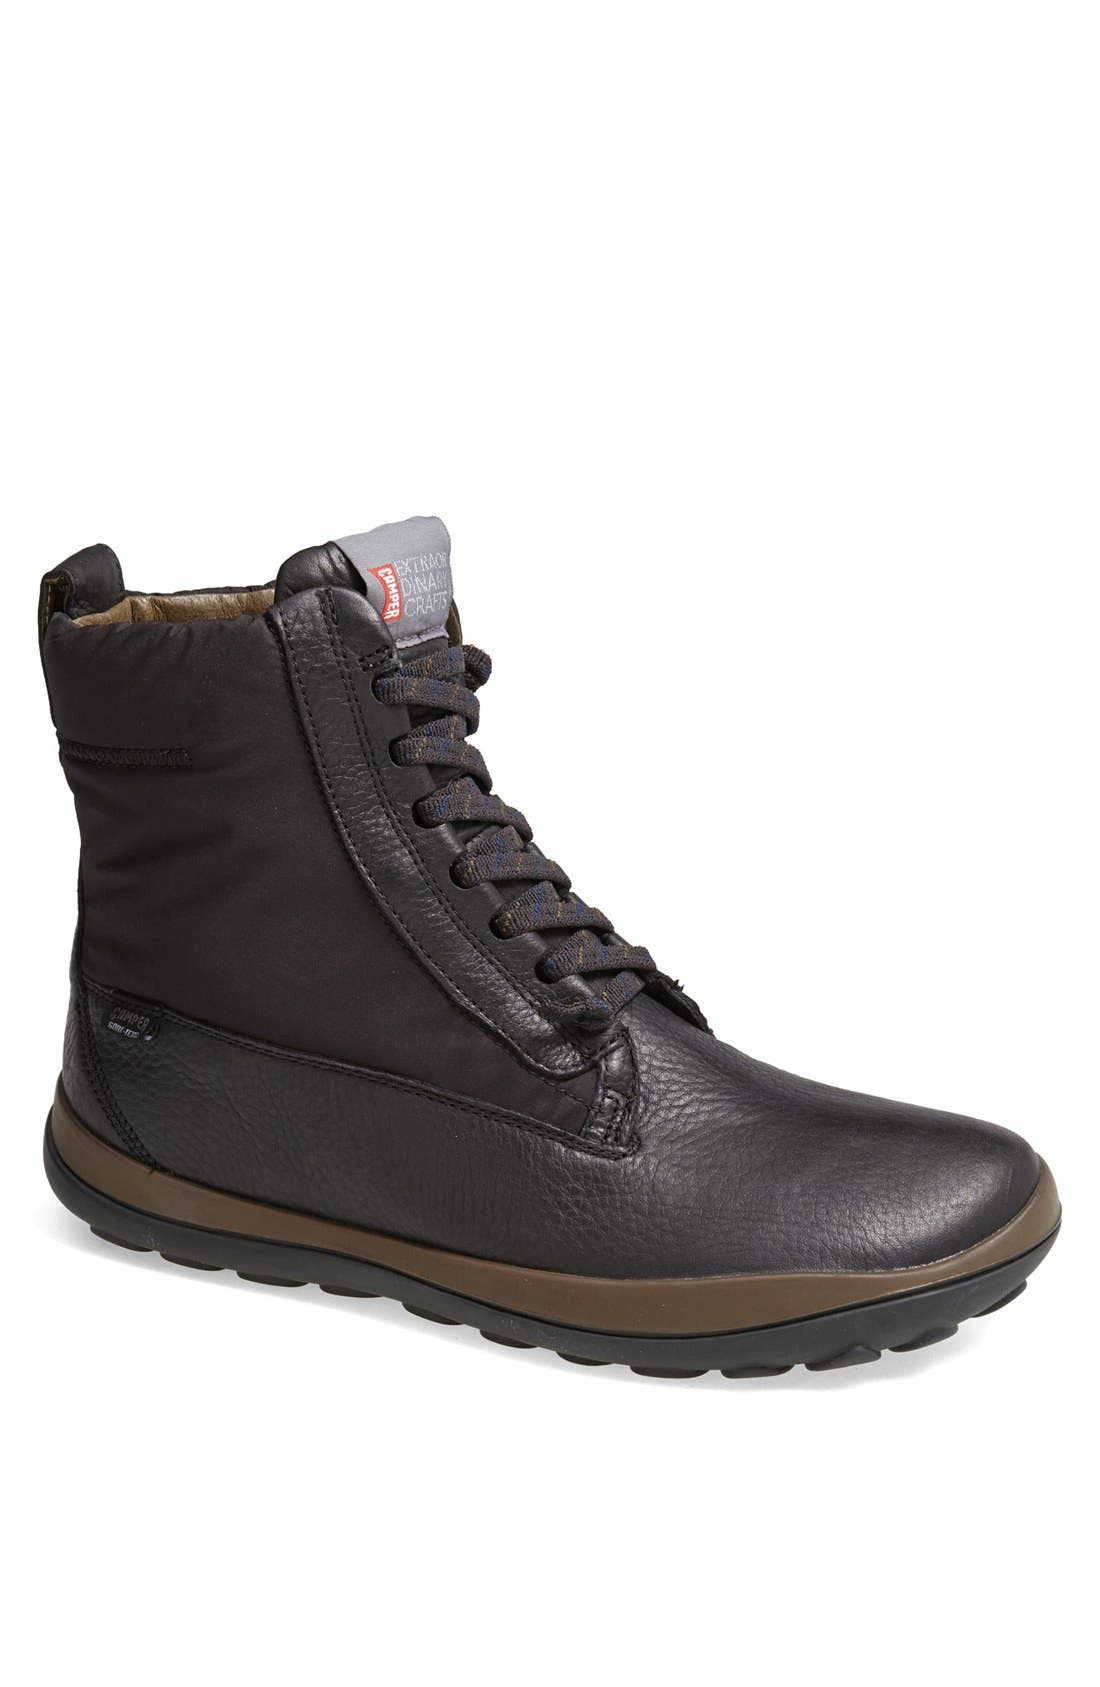 Alternate Image 1 Selected - Camper 'Peu Pista' Gore-Tex® Snow Boot (Men)